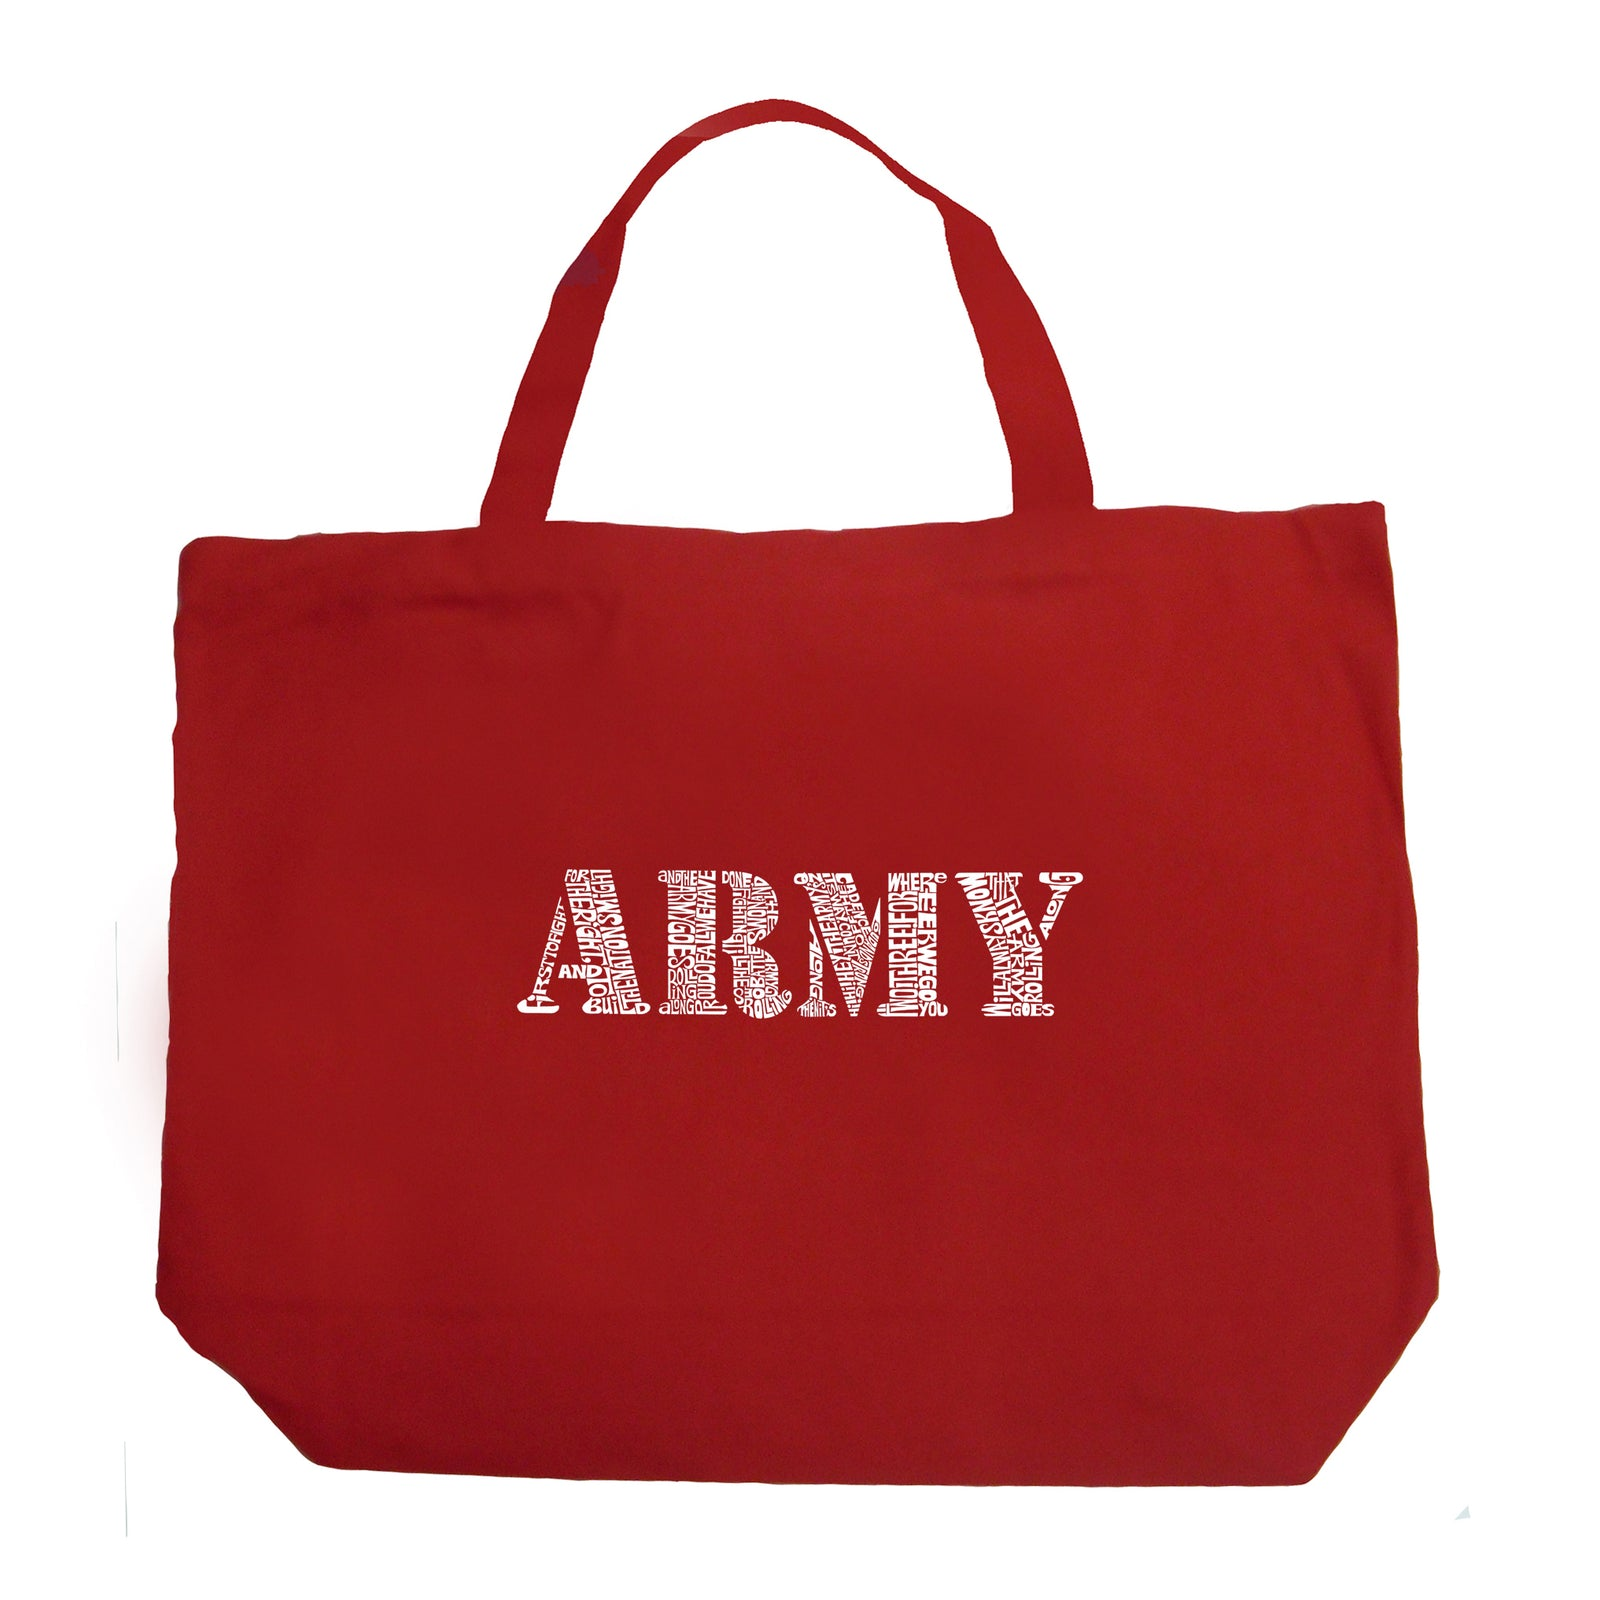 Large Tote Bag - LYRICS TO THE ARMY SONG